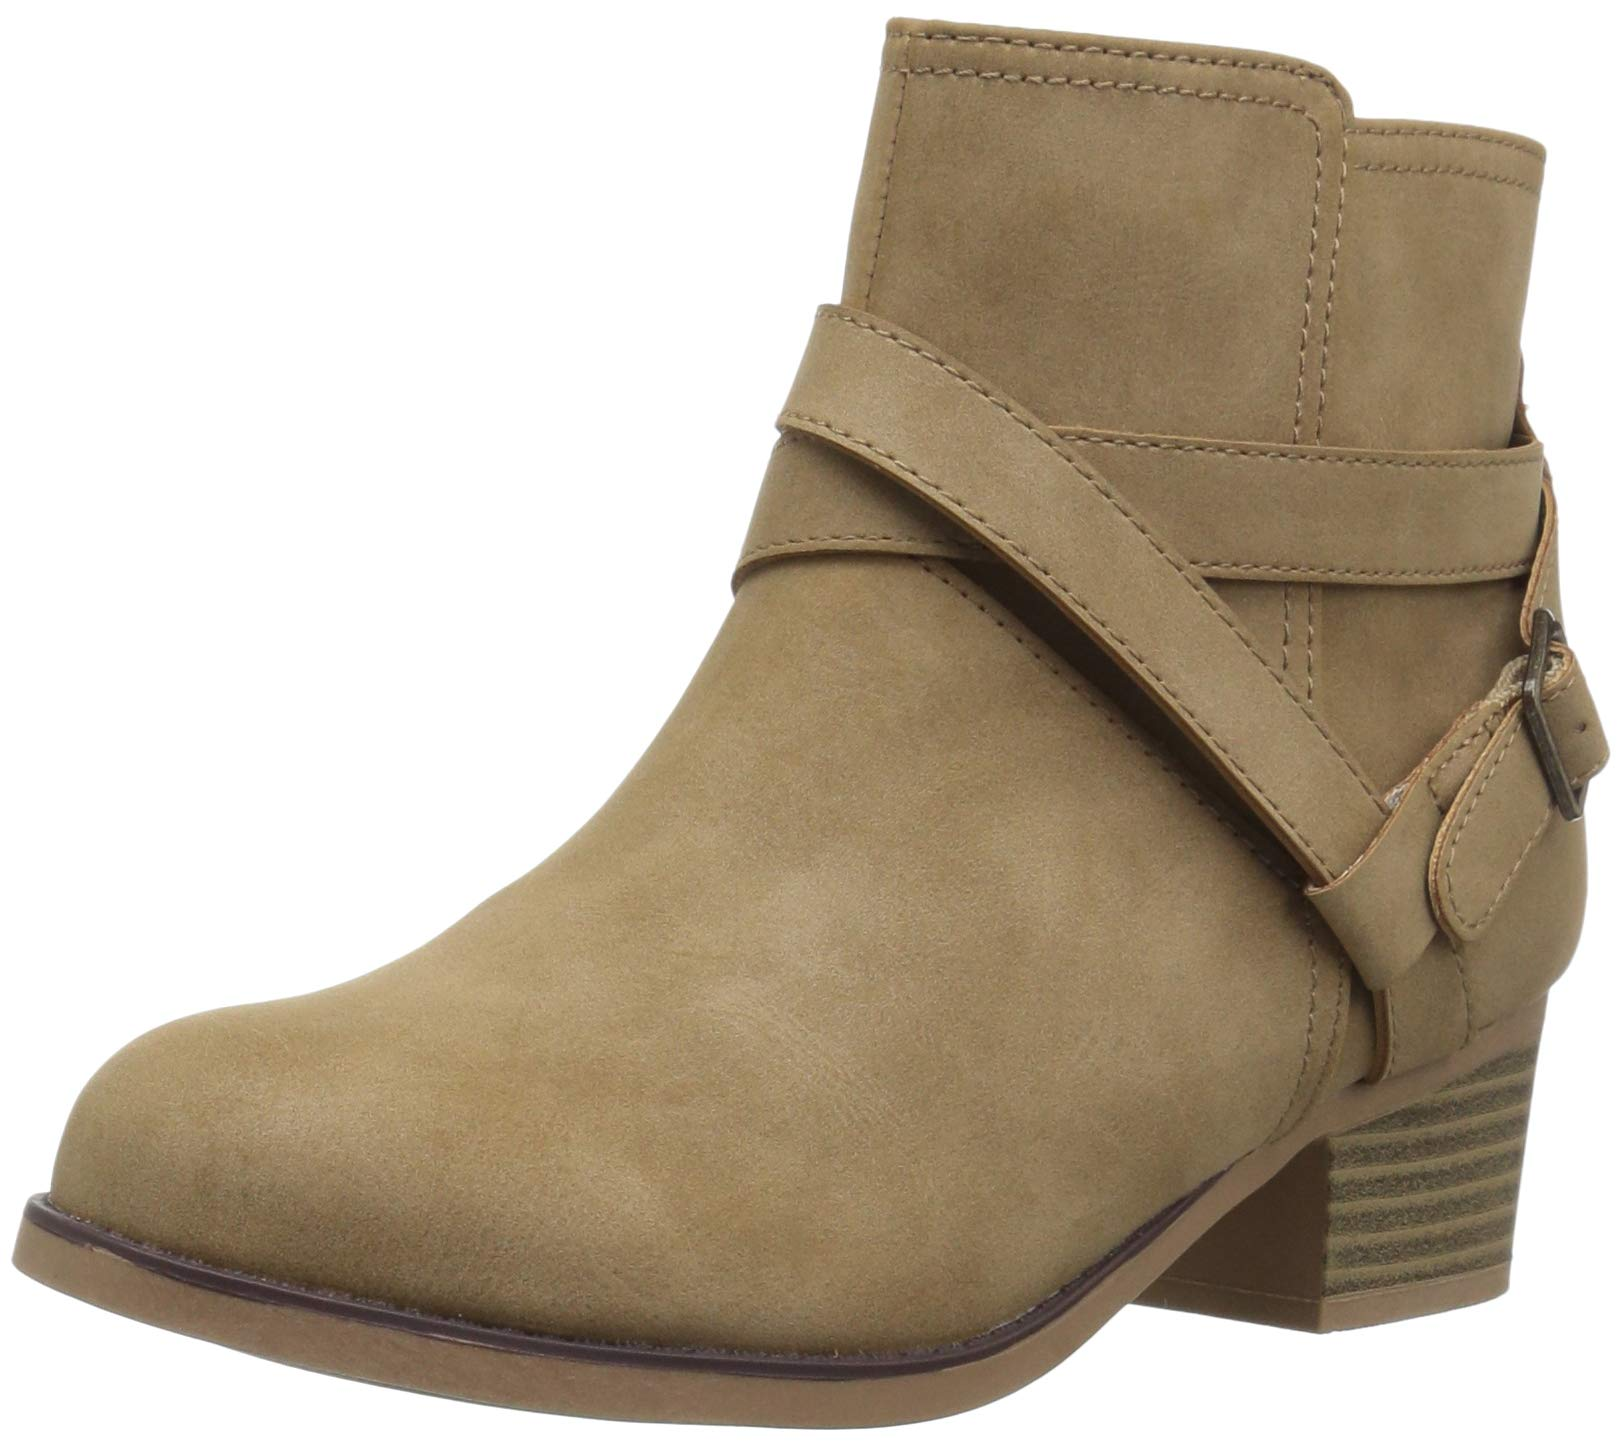 The Children's Place Girls' Bootie Fashion Boot, Tan, Youth 1 Child US Little Kid